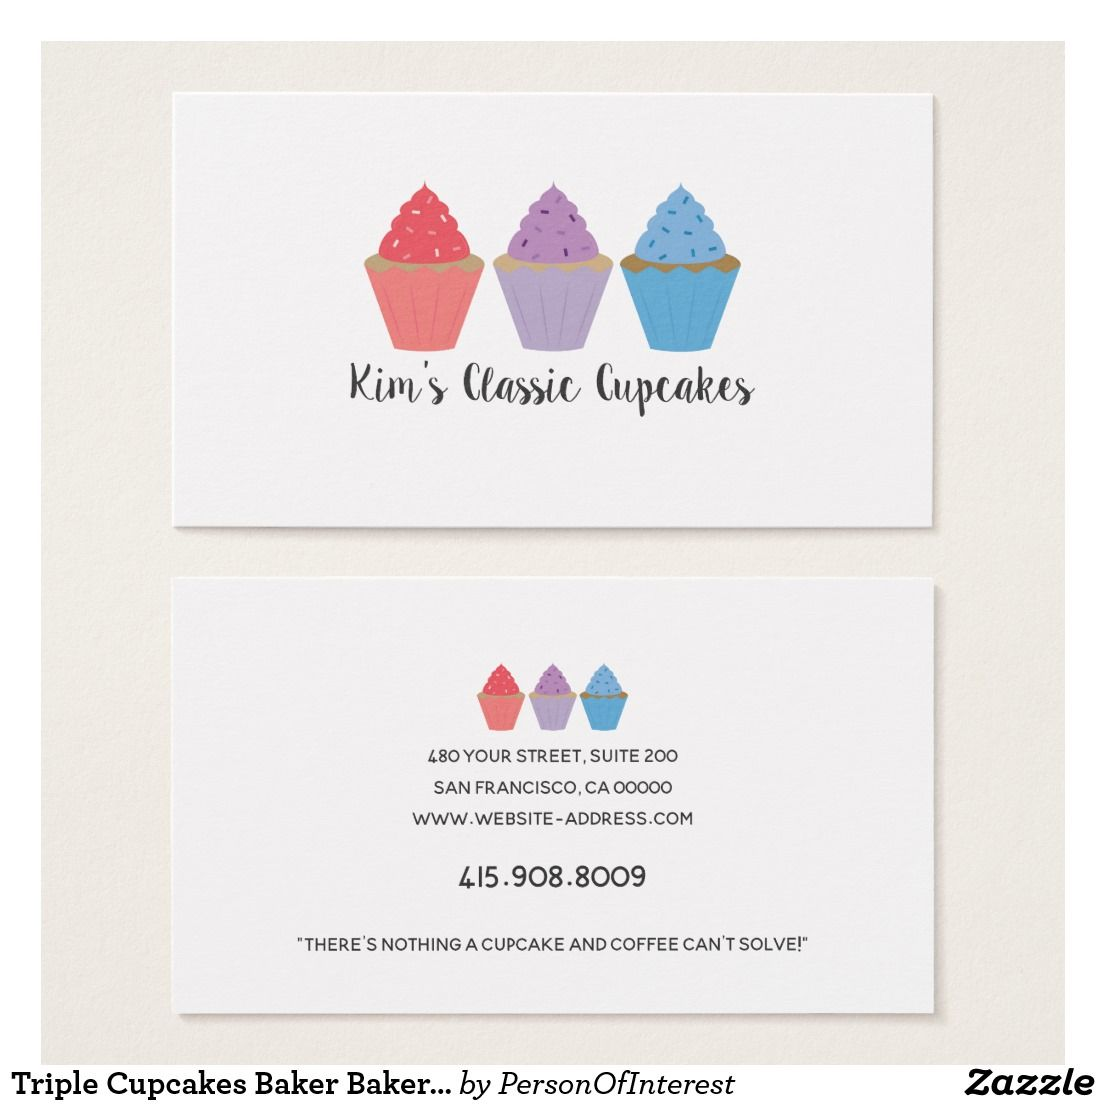 Triple Cupcakes Baker Bakery Chef Cater Whimsical Business Card ...